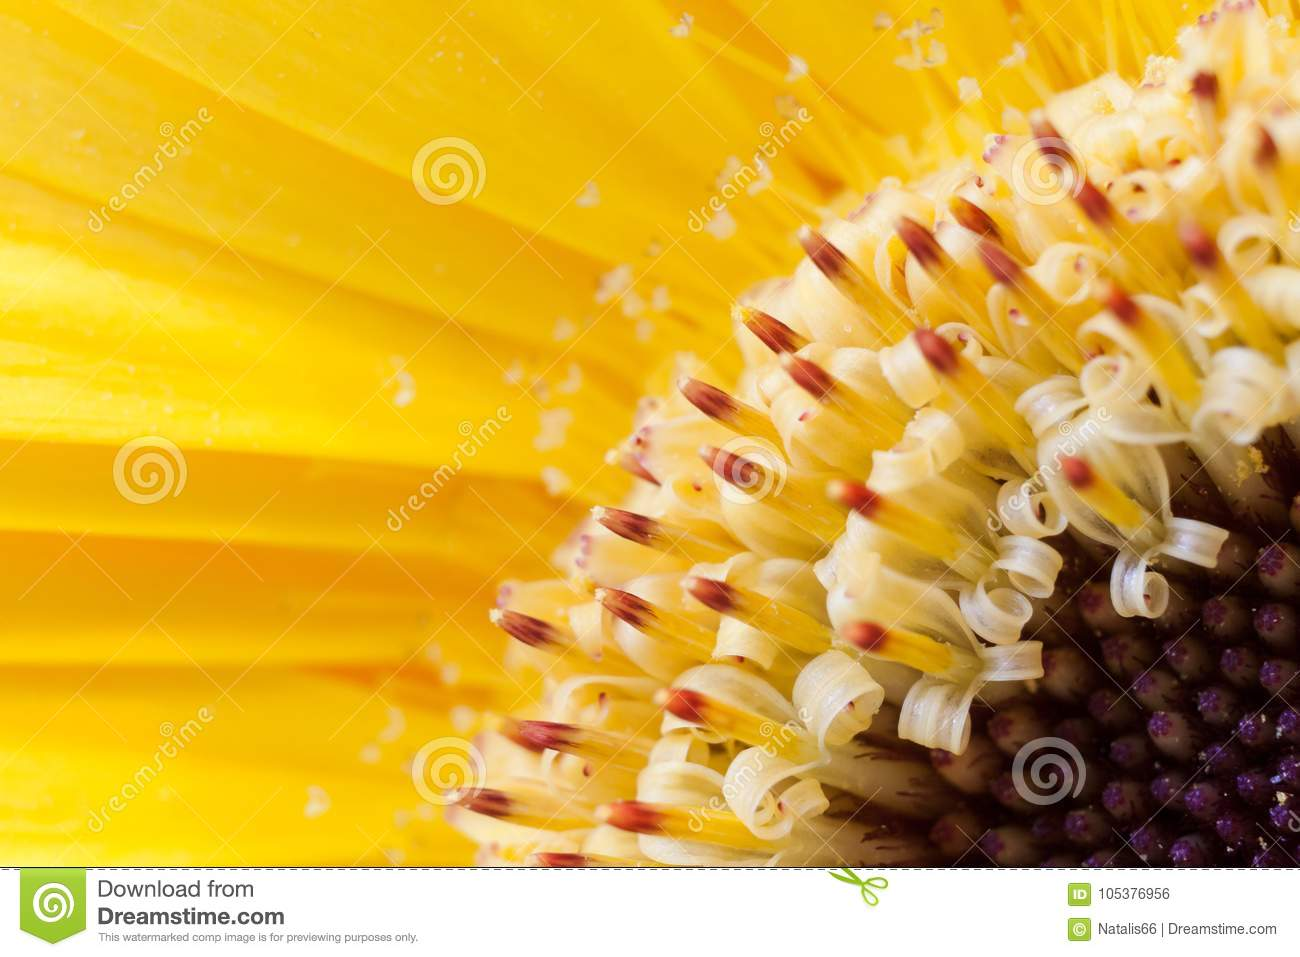 Diagonal blurred floral background. Close-up yellow gerberas petals and stamens with pollen.